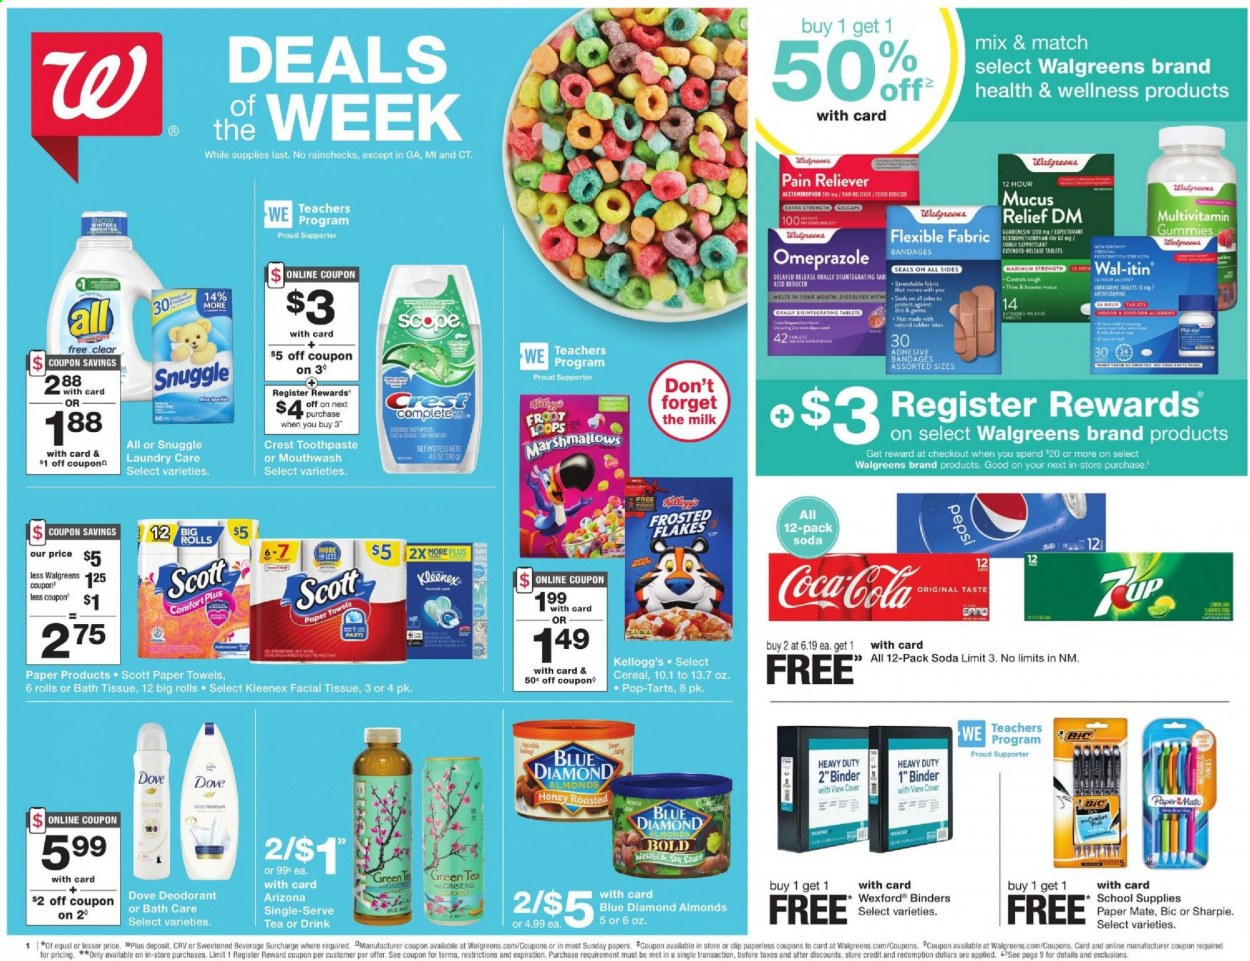 Walgreens Flyer - 08.23.2020 - 08.29.2020 - Sales products - Scott, rolls, milk, marshmallows, Kellogg's, Pop-Tarts, Thins, cereals, Frosted Flakes, honey, almonds, Blue Diamond, Coca-Cola, Pepsi, soda, AriZona, green tea, tea, bath tissue, Kleenex, kitchen towels, paper towels, Snuggle, Bold, Dove, toothpaste, mouthwash, Crest, anti-perspirant, deodorant, BIC, binder, rubber, PaperMate, Sharpie, multivitamin, ginseng. Page 1.